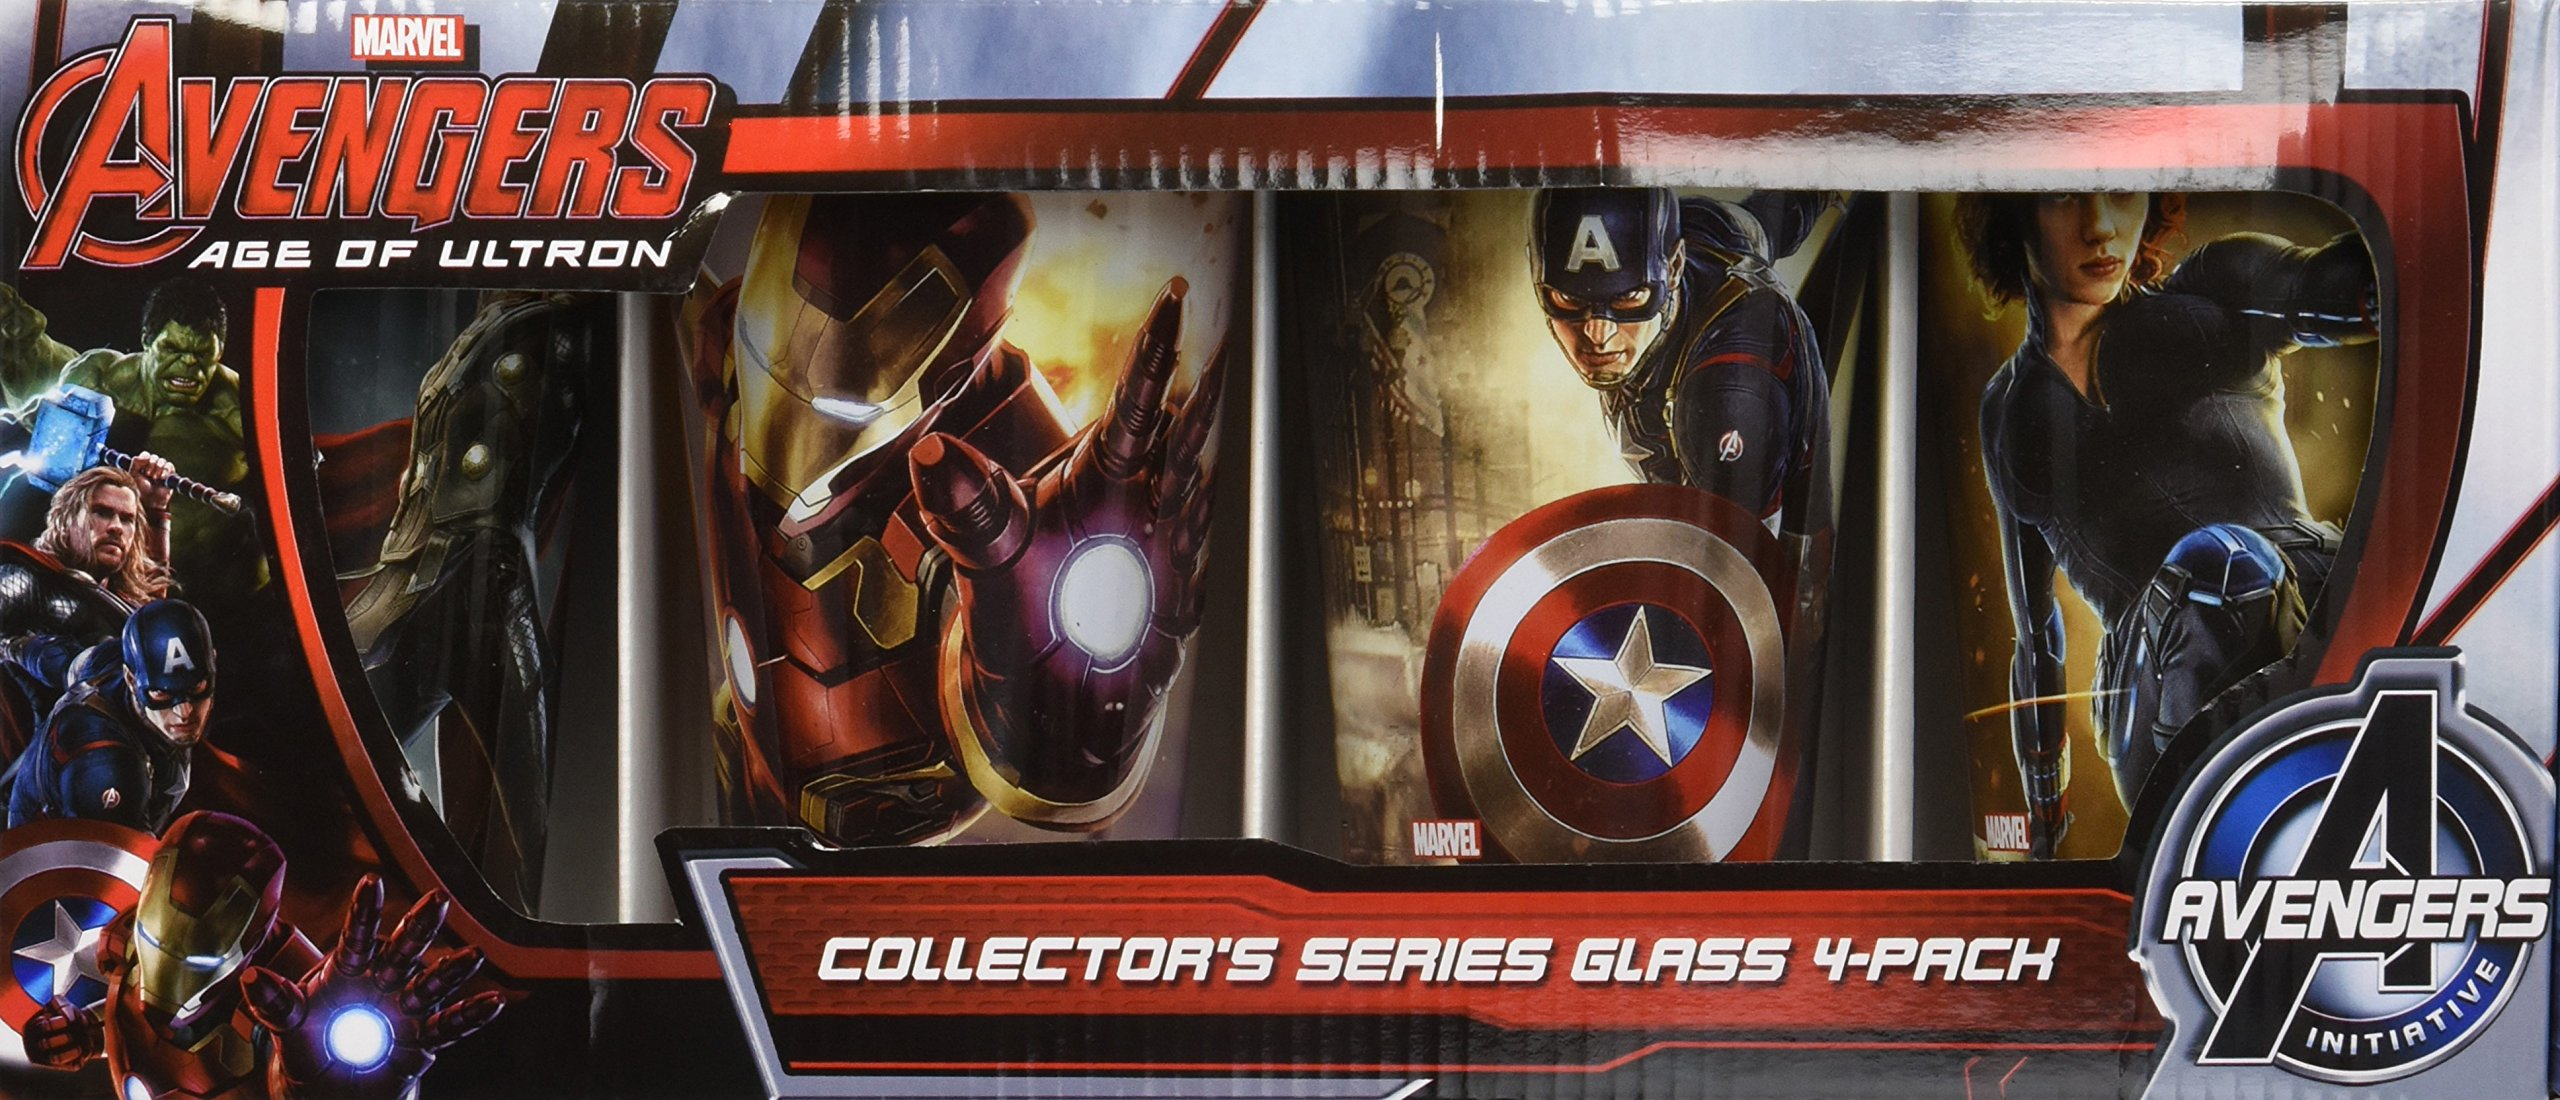 ICUP Marvel Avengers Age of Ultron Full Color Pint Glass (4 Pack), Clear by ICUP (Image #2)